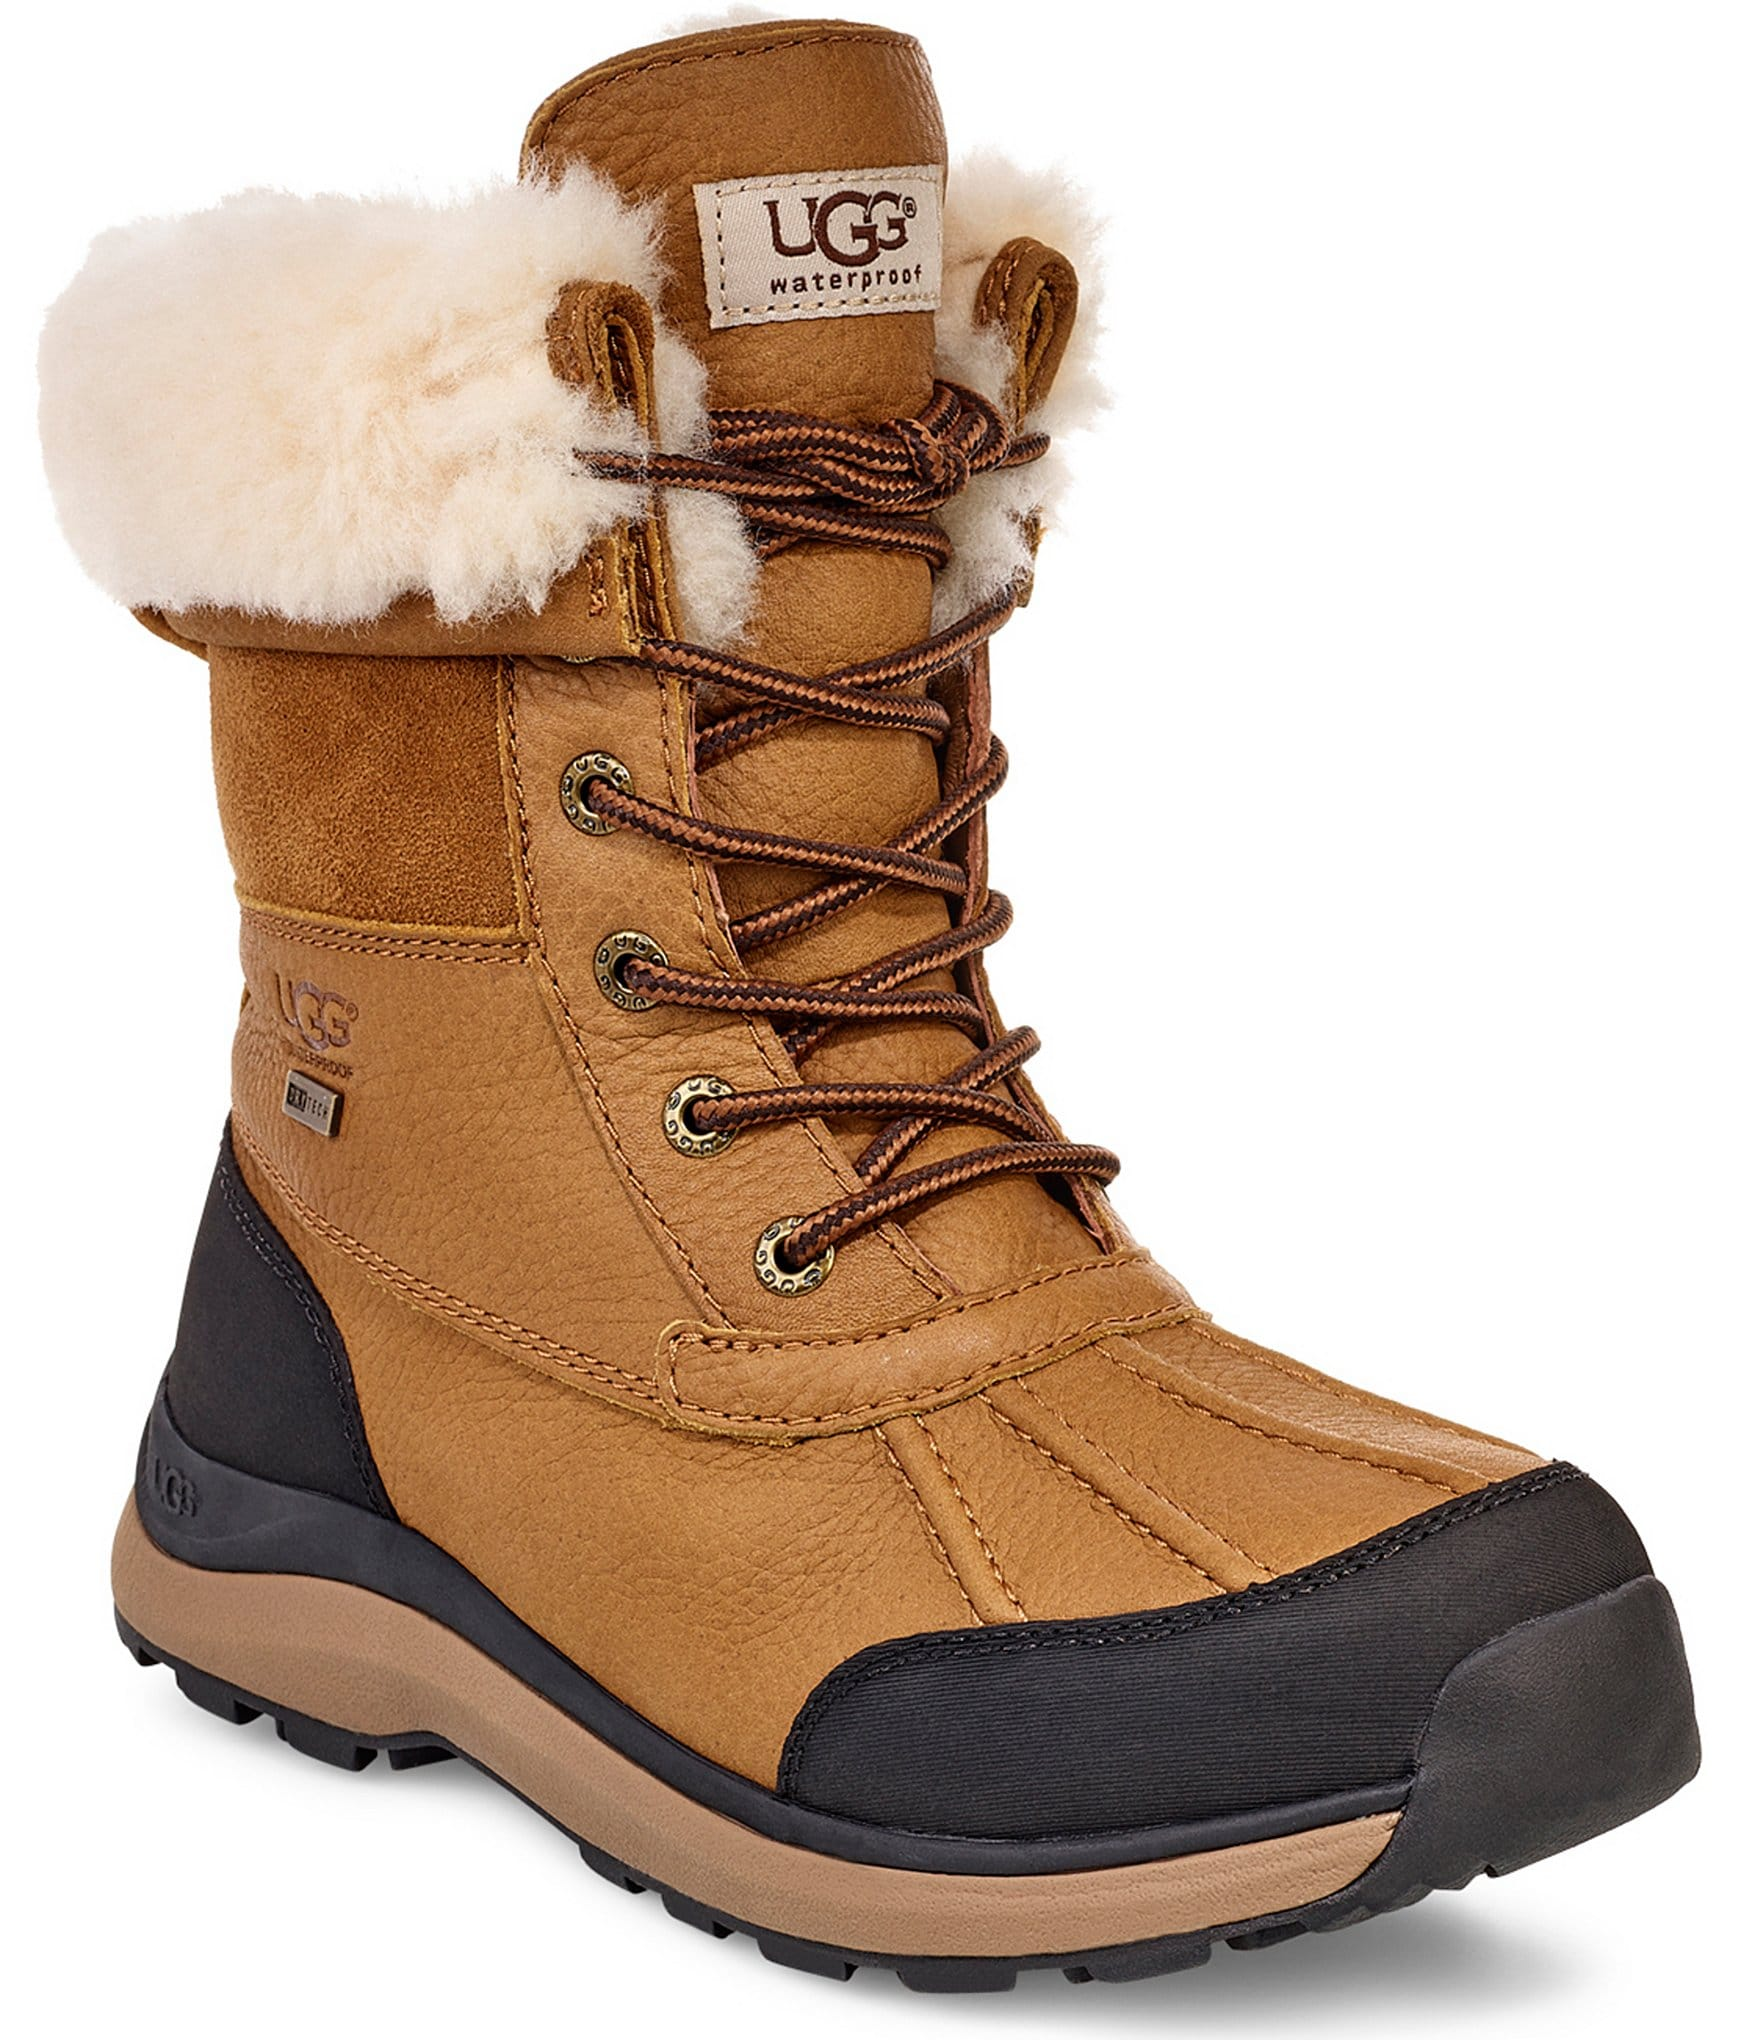 stores that sell uggs boots cheap